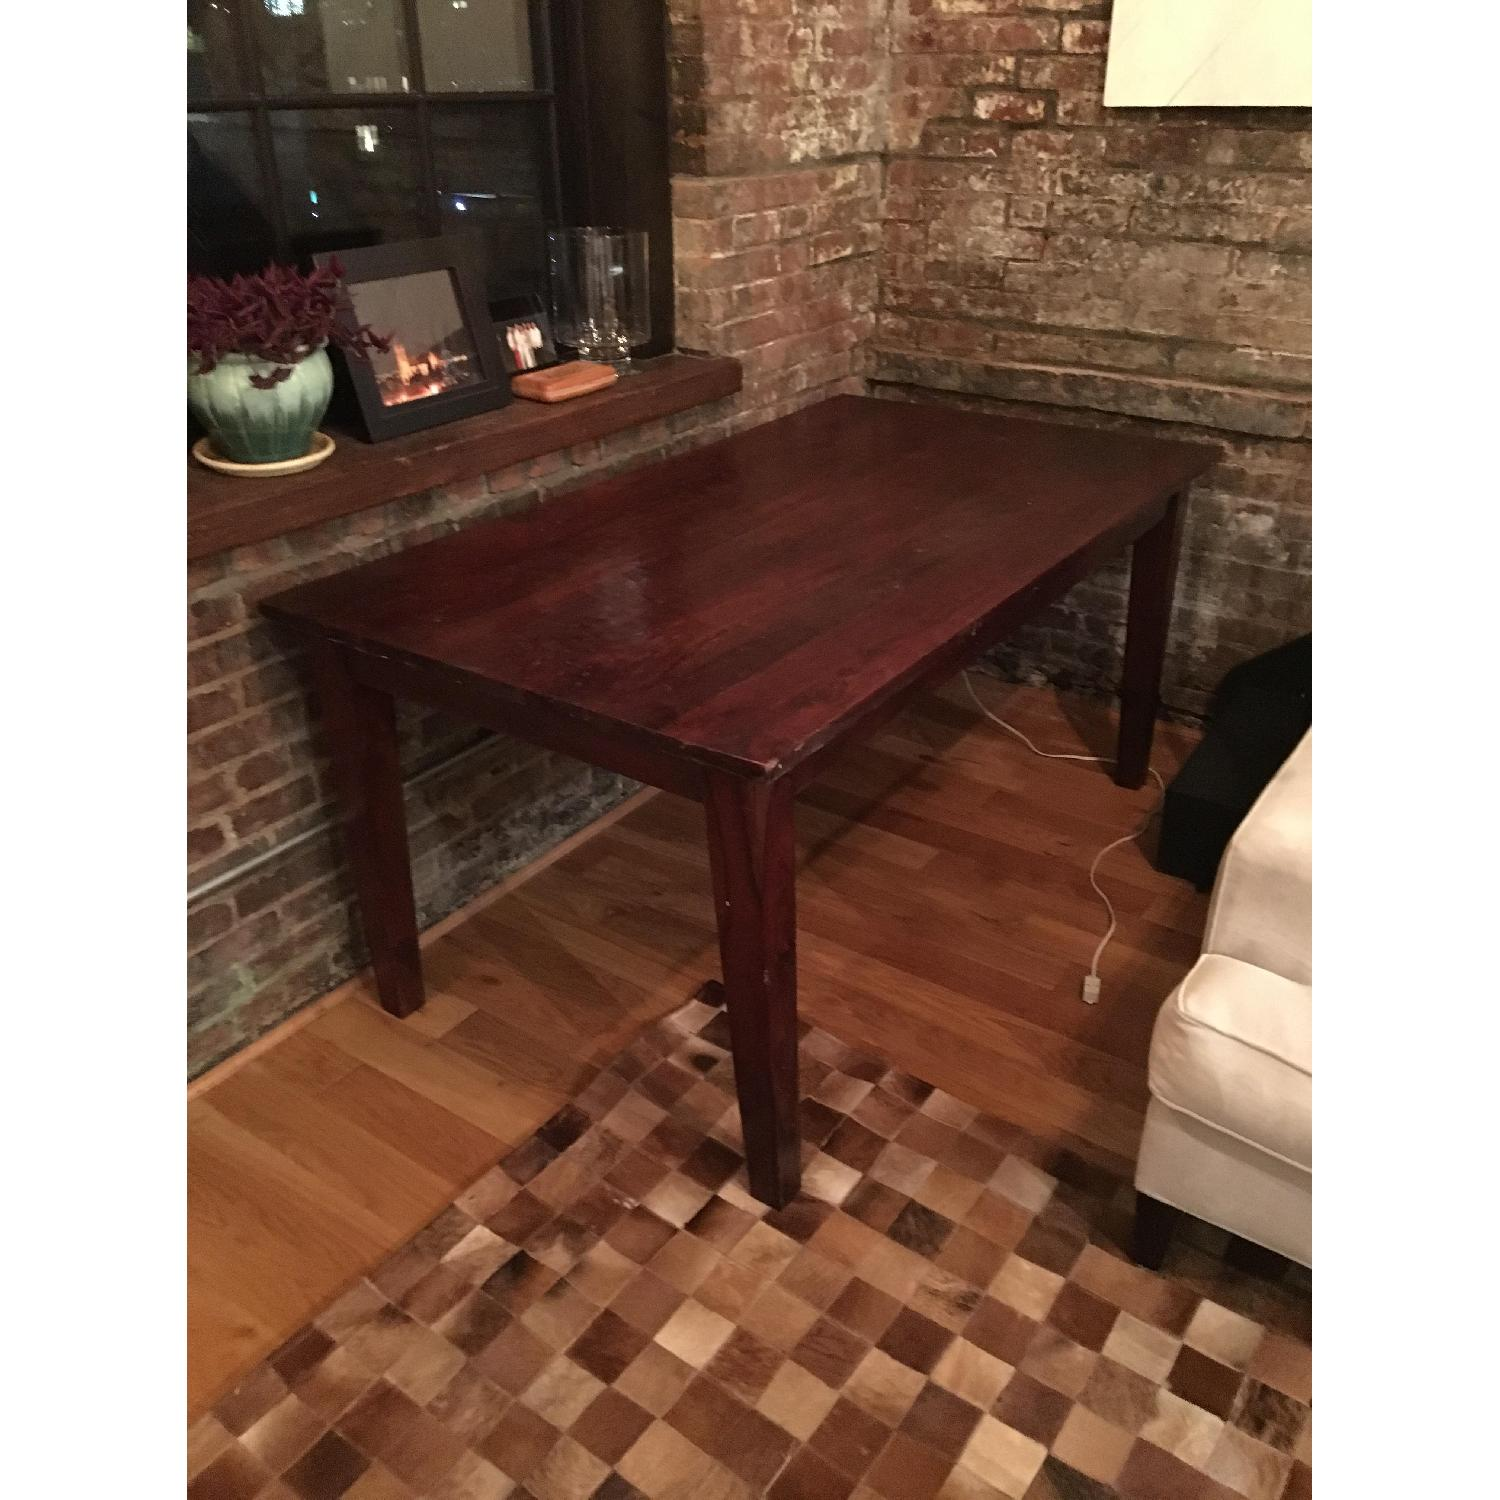 Restoration Hardware Dining Table in Cherry Finish - image-1